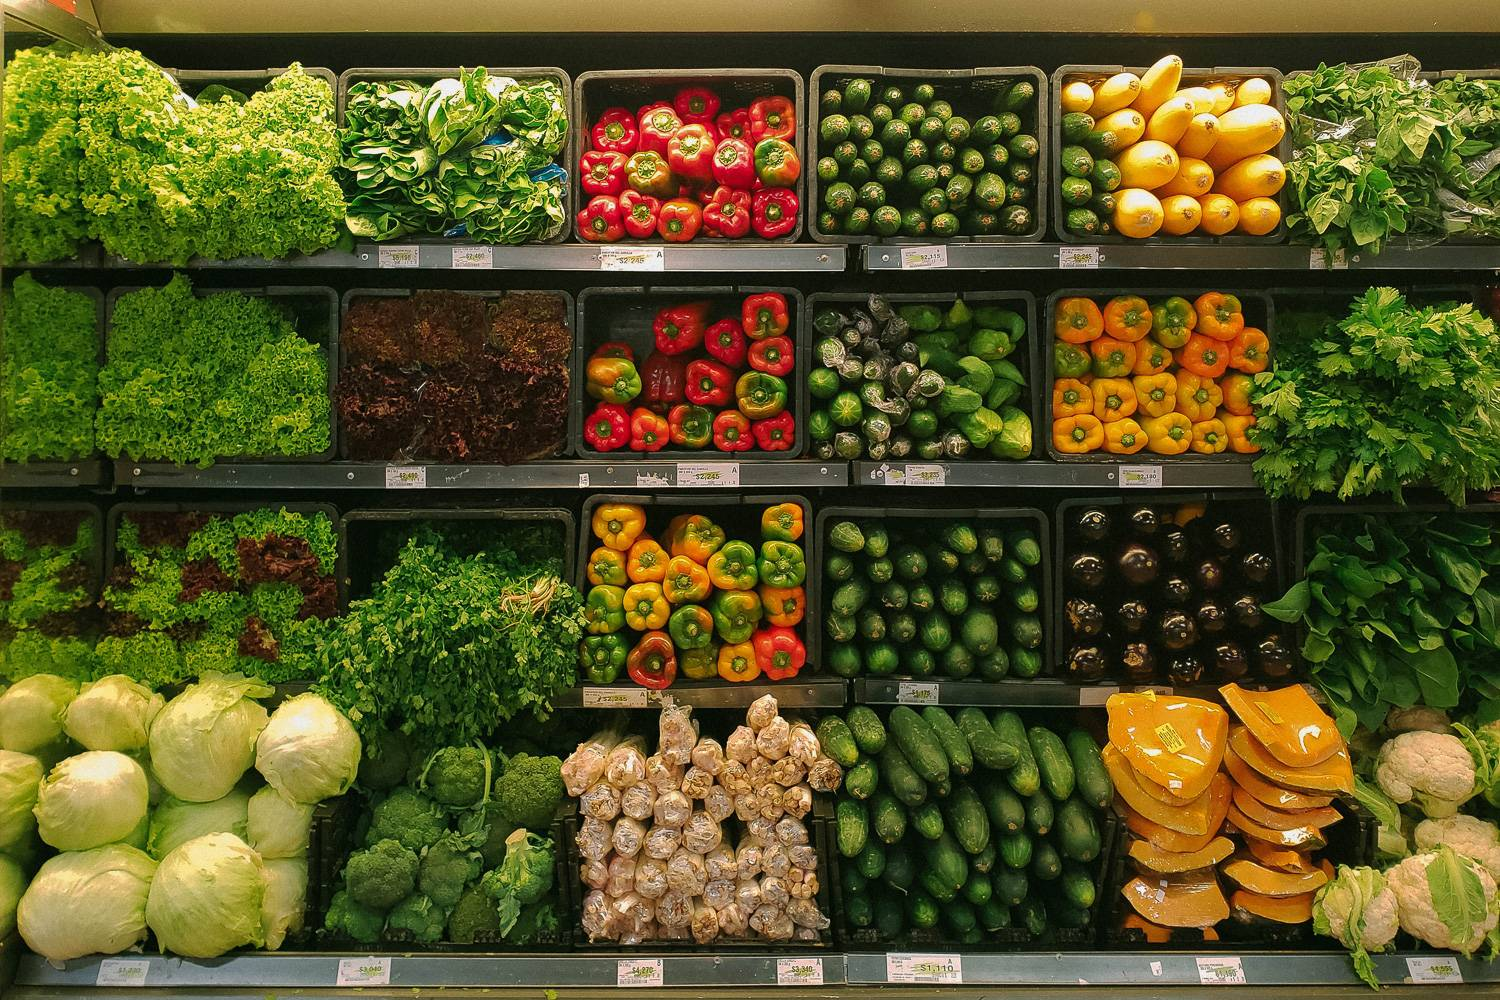 Rows of different colorful vegetables neatly stacked inside a grocery store.